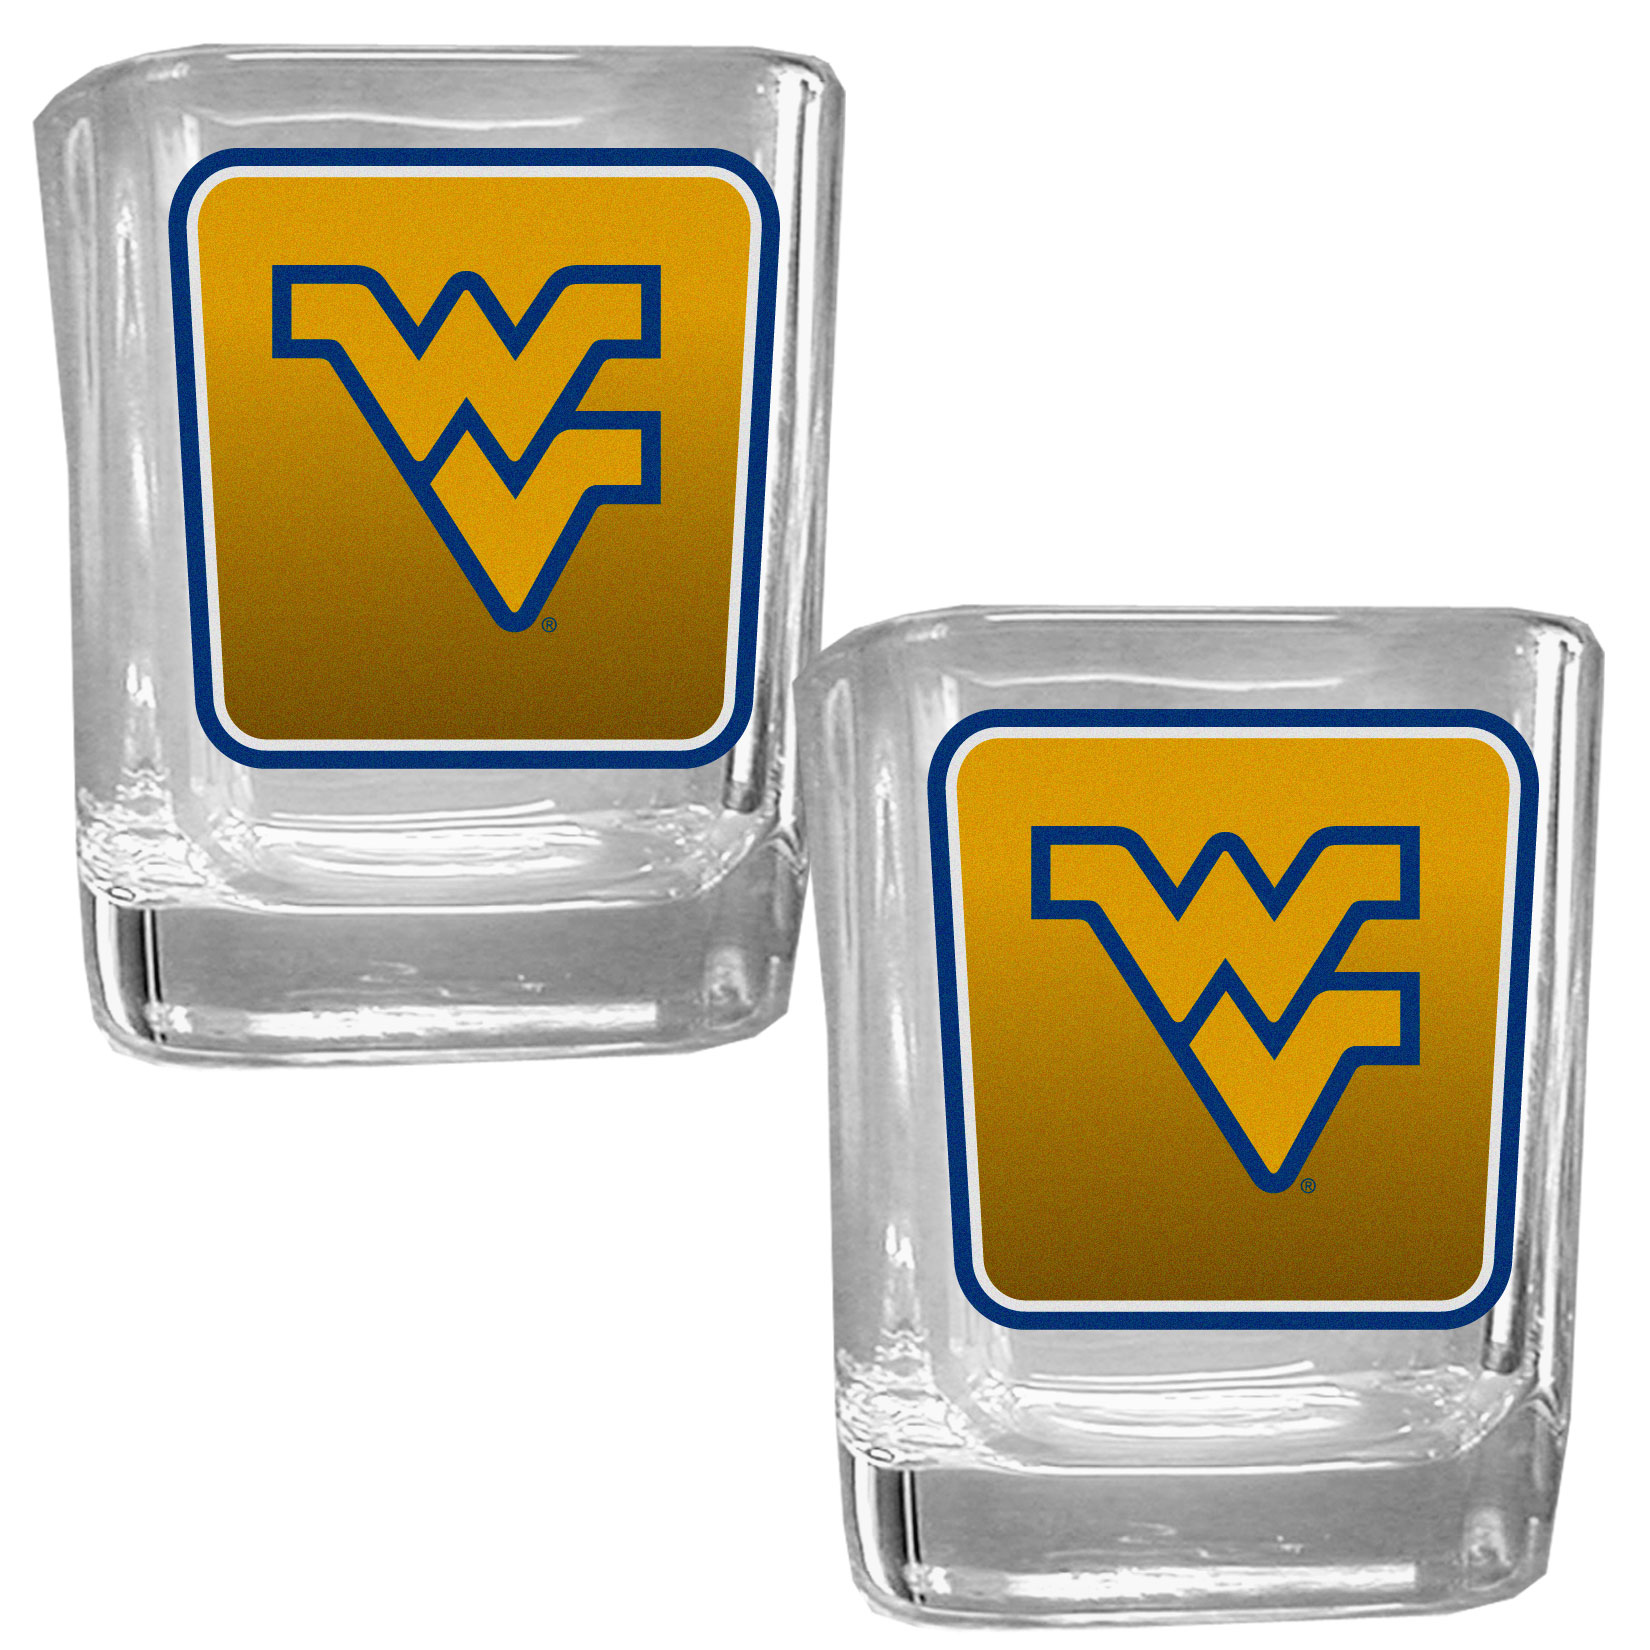 W. Virginia Mountaineers Square Glass Shot Glass Set - Our glass shot glasses are perfect for collectors or any game day event. The 2 ounce glasses feature bright, vidid digital W. Virginia Mountaineers graphics. Comes in a set of 2.